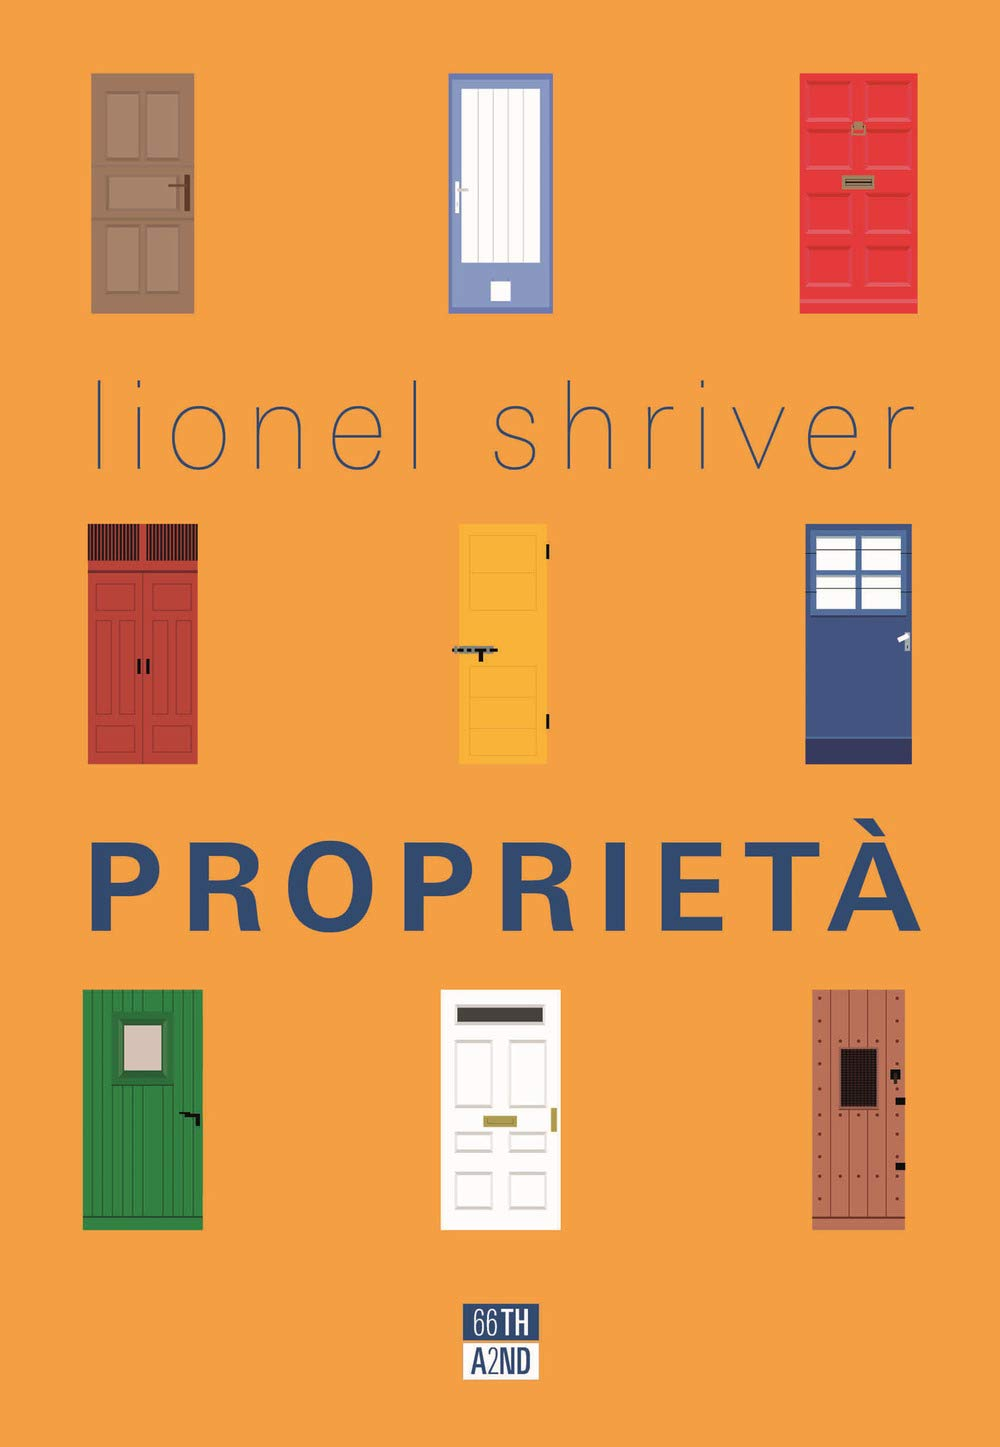 Proprietà - Lionel Shriver cover